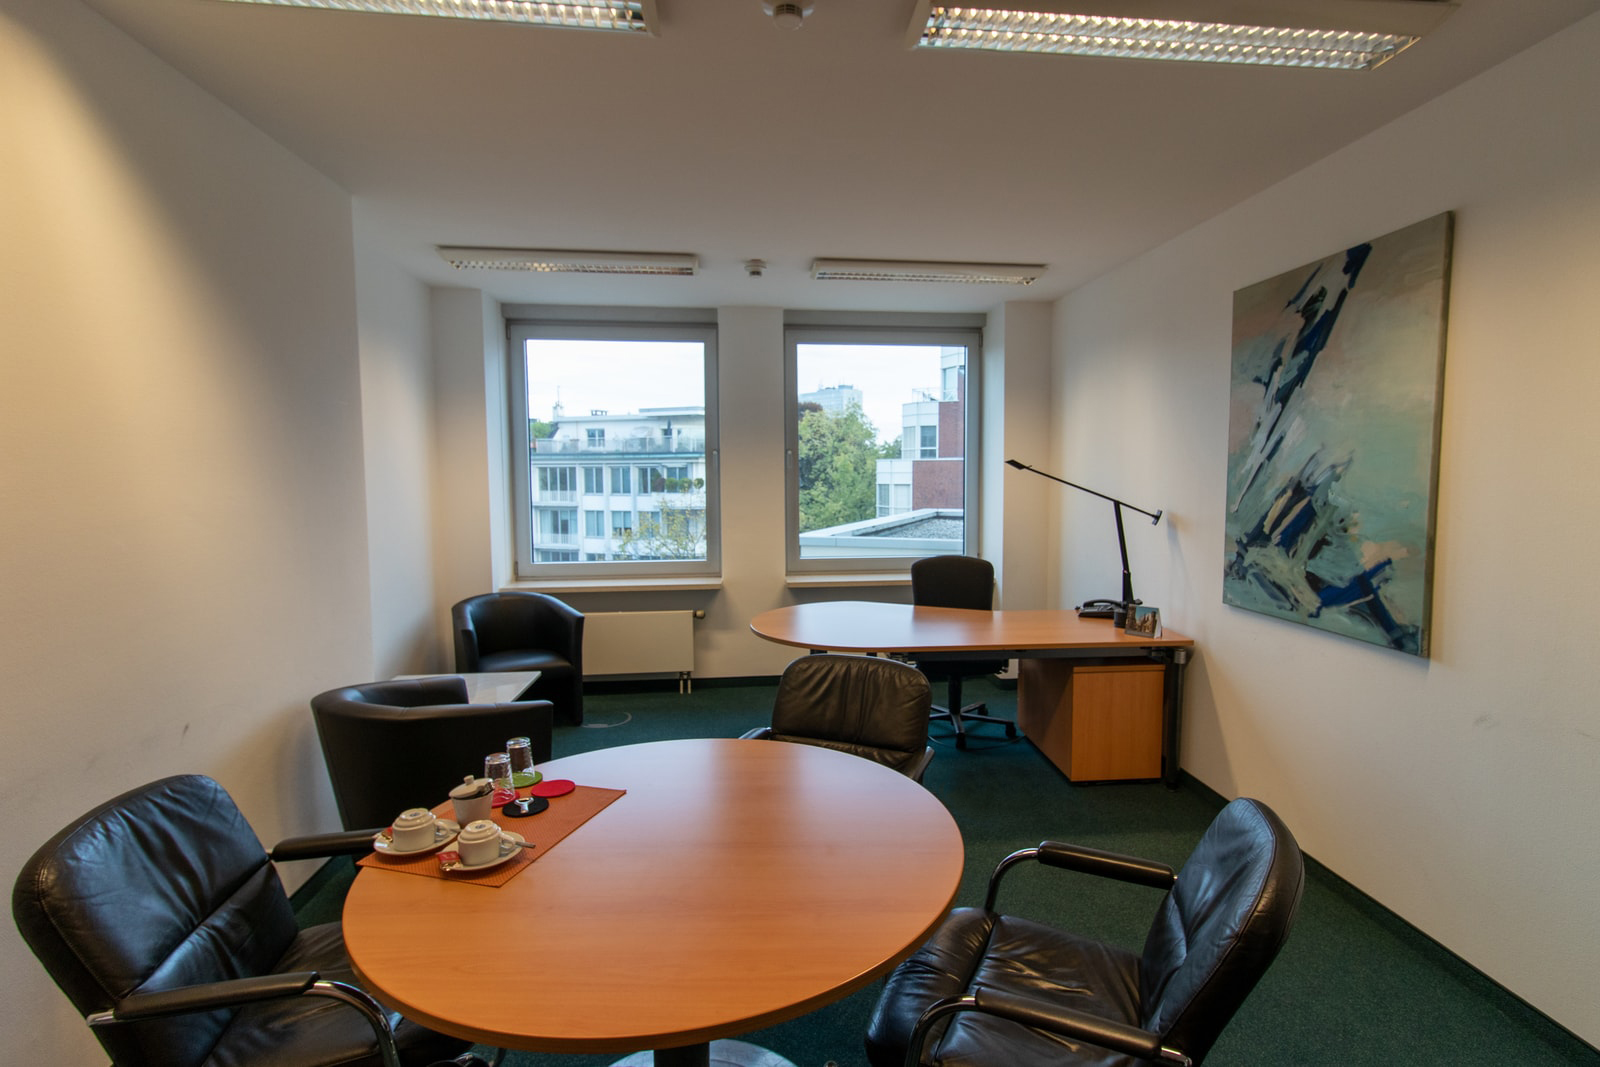 small meeting room Theodor-Heuss-Ring 23